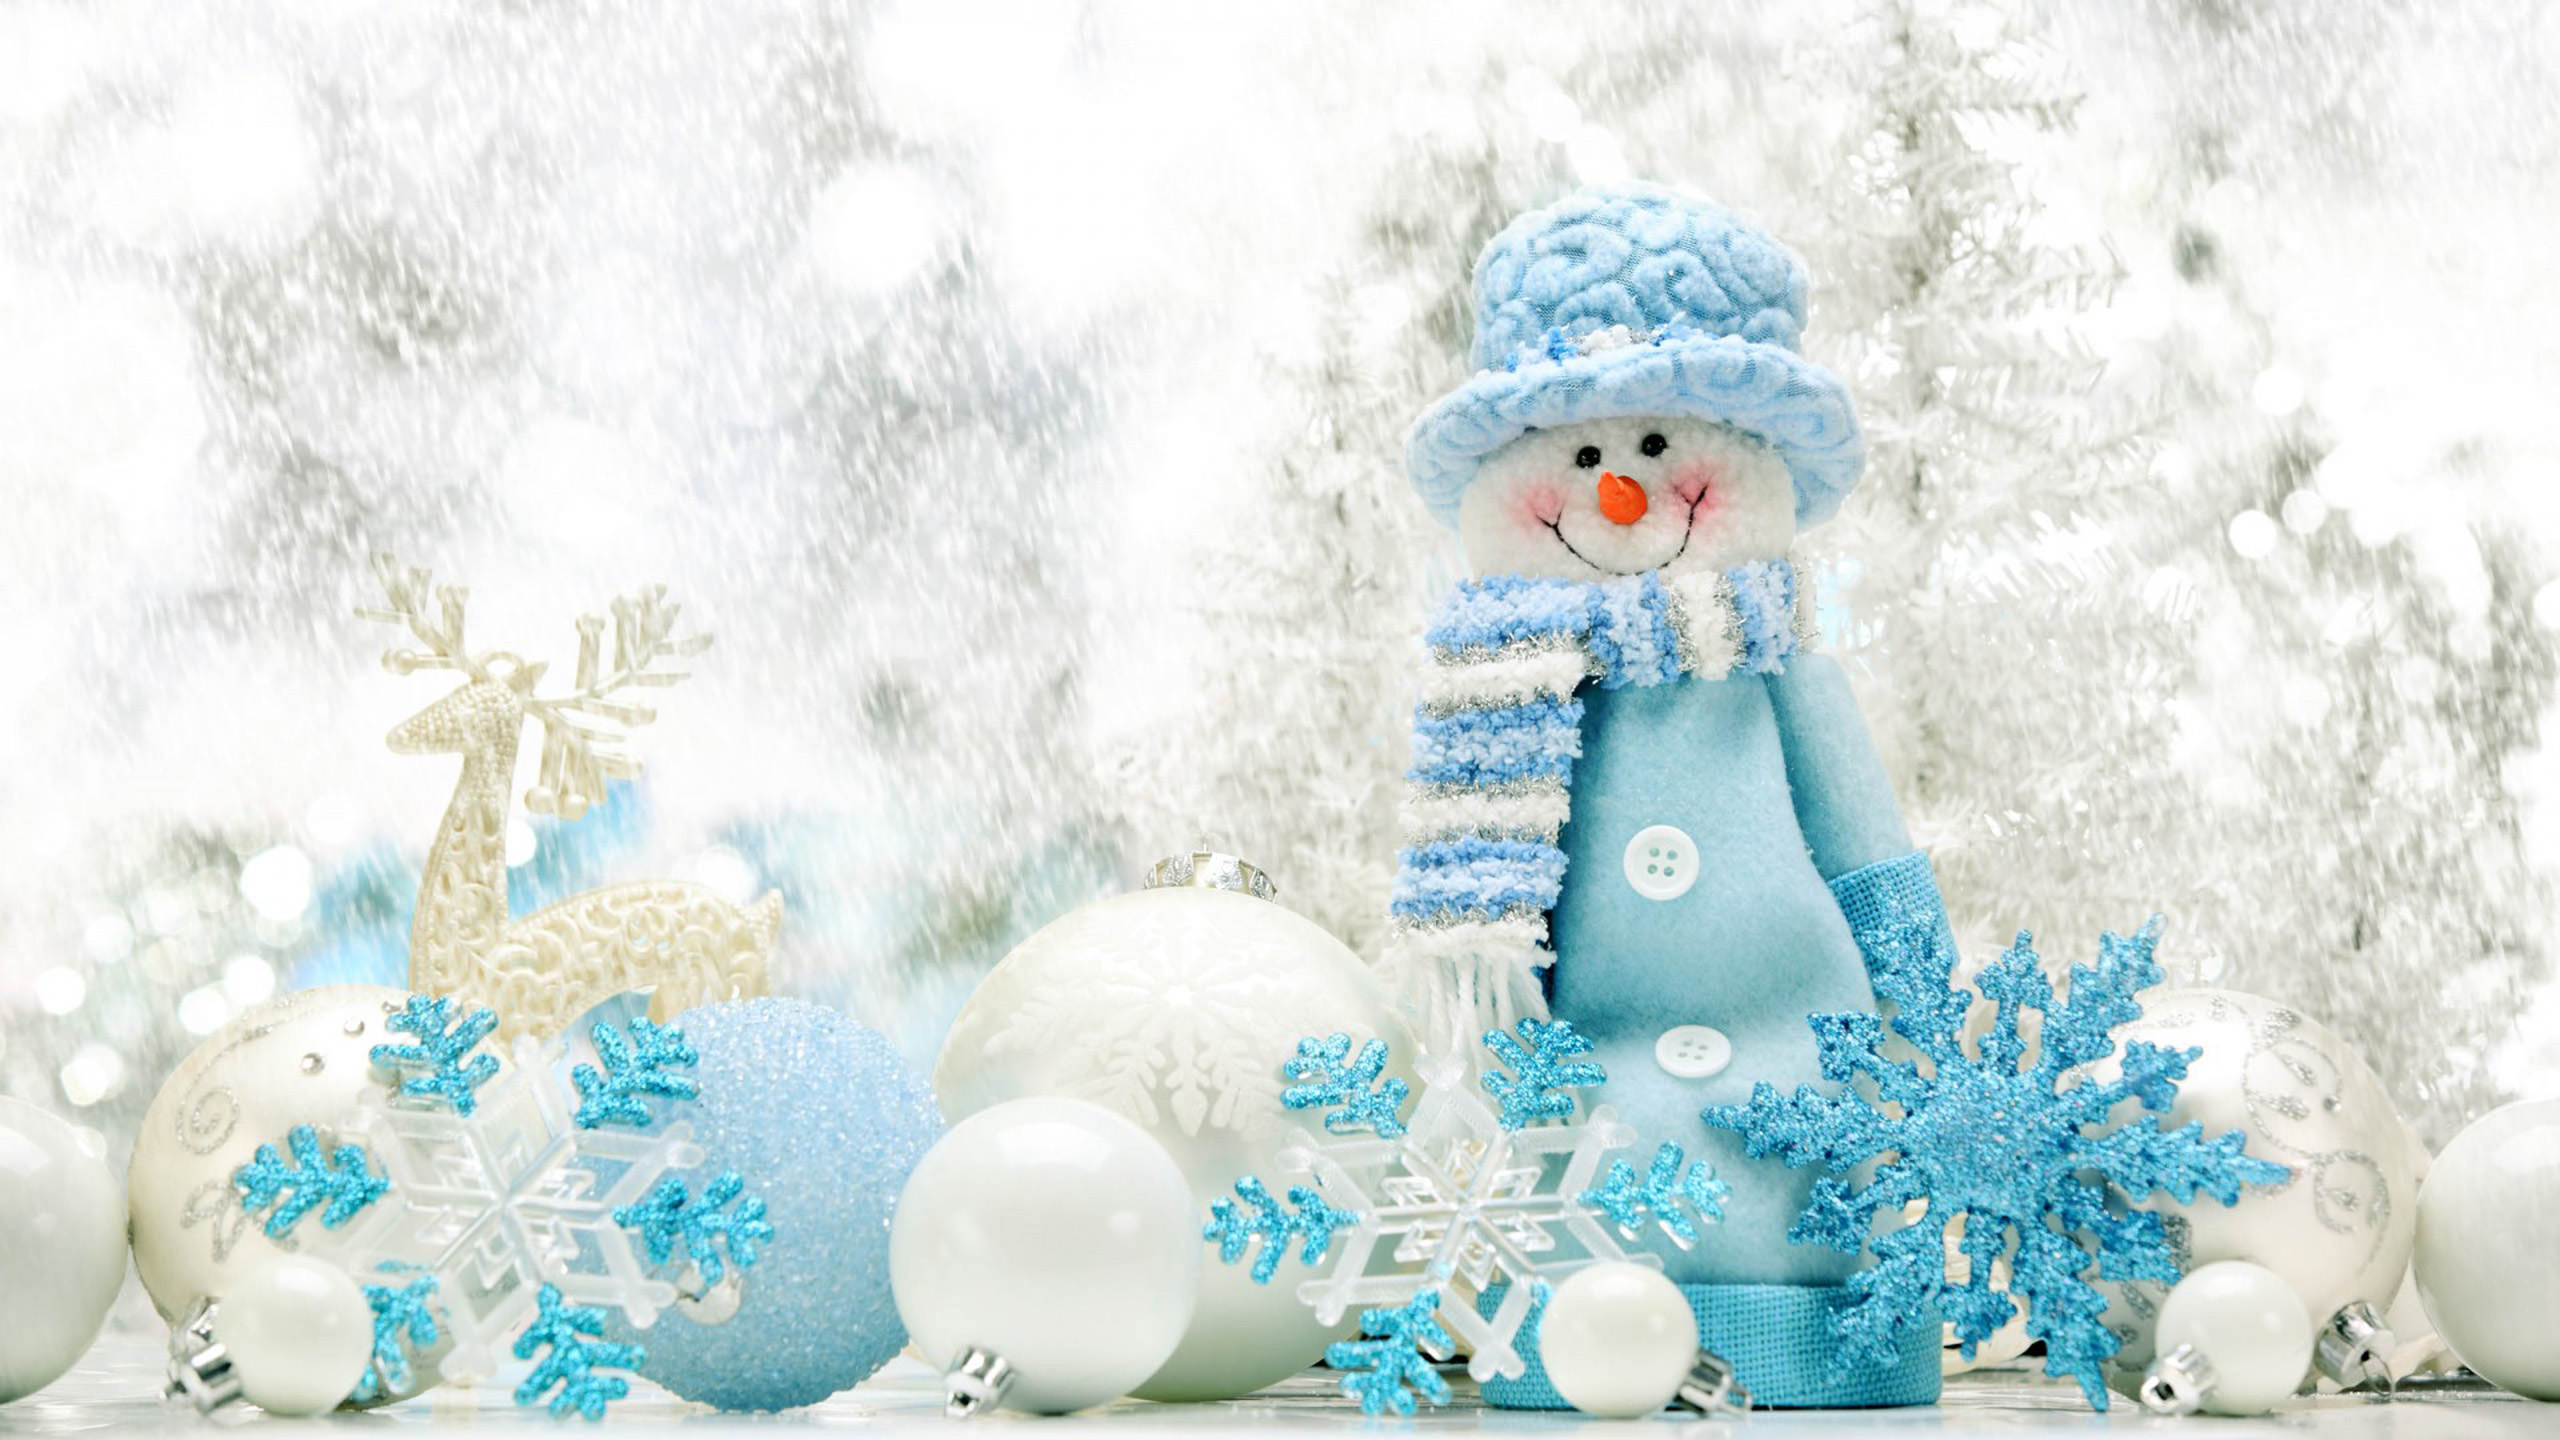 Cute snowman Wallpapers HD HD Desktop Wallpapers 2560x1440